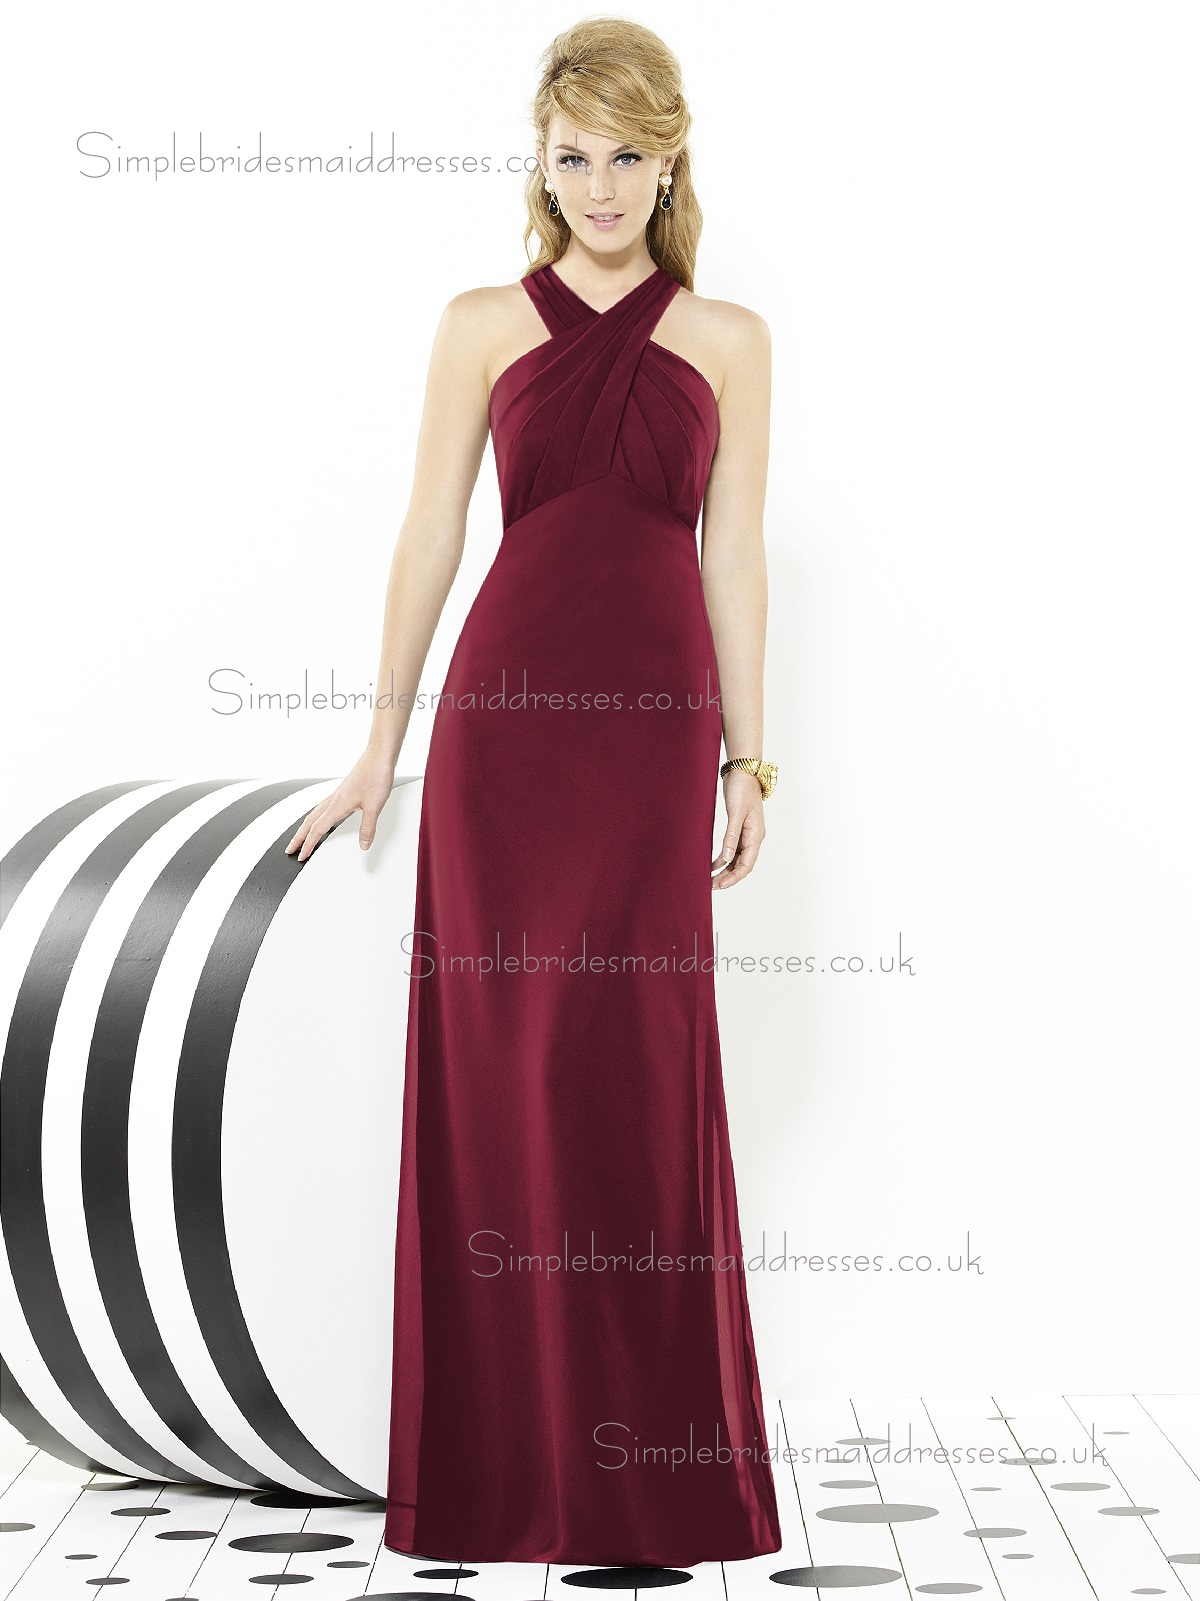 Burgundy / Red Floor-length Mermaid Sleeveless V-neck Empire Chiffon Ruched Bridesmaid Dress